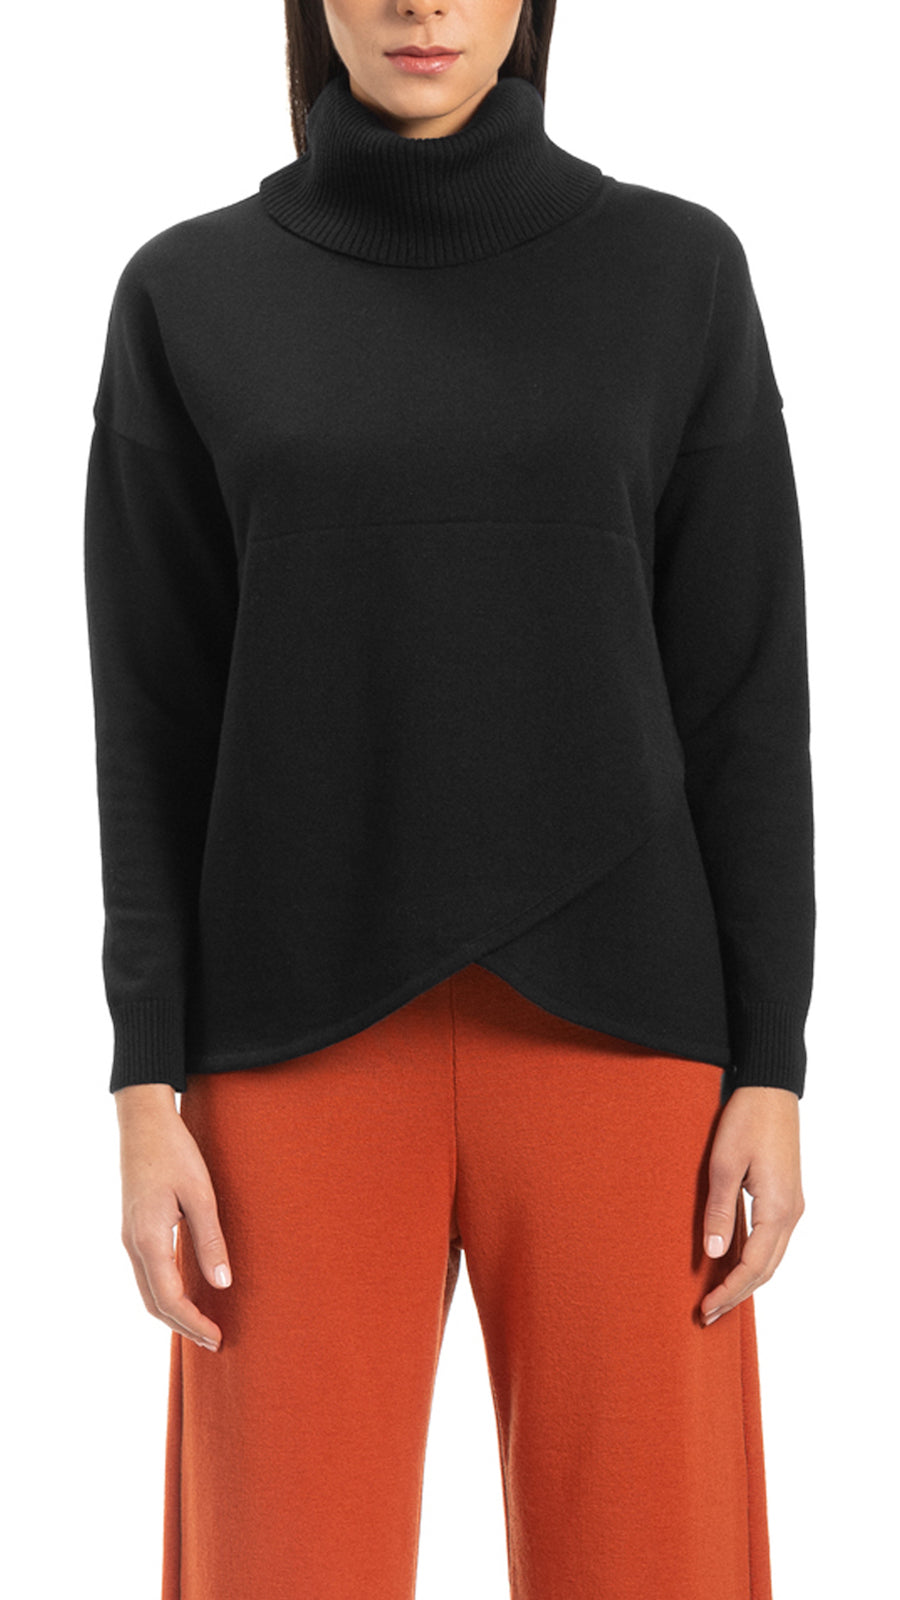 CONTEMPO Reba mock-wrap over-sized turtle neck sweater, Black